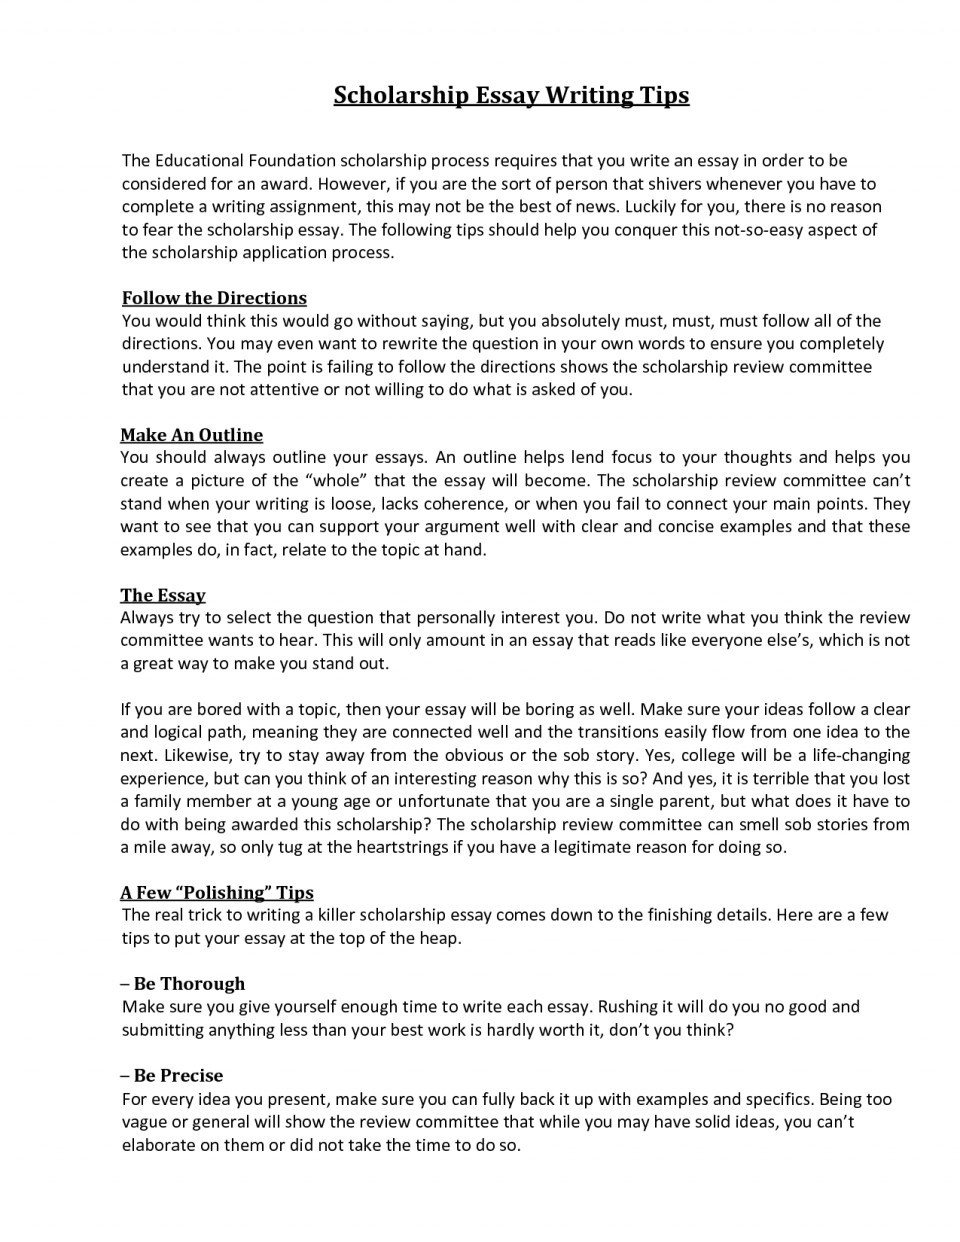 001 What To Write For Scholarship Essay Example Awesome A How Introduction That Stands Out About Your Career Goals 960